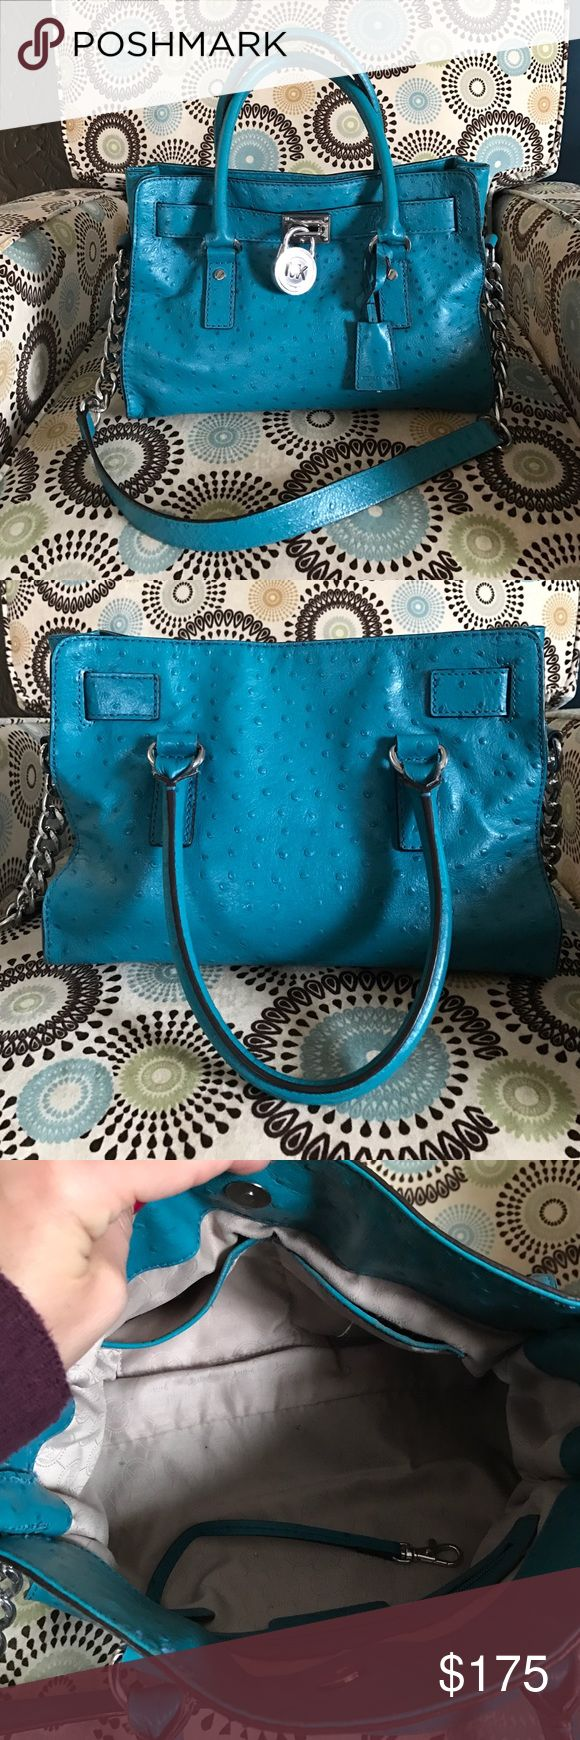 MICHAEL KORS HANDBAG Michael Kors ~ Turquoise ~ Crocodile Handbag!!  So cute and in excellent condition!  Open to Trade for another MK Bag 😊 Michael Kors Bags Satchels